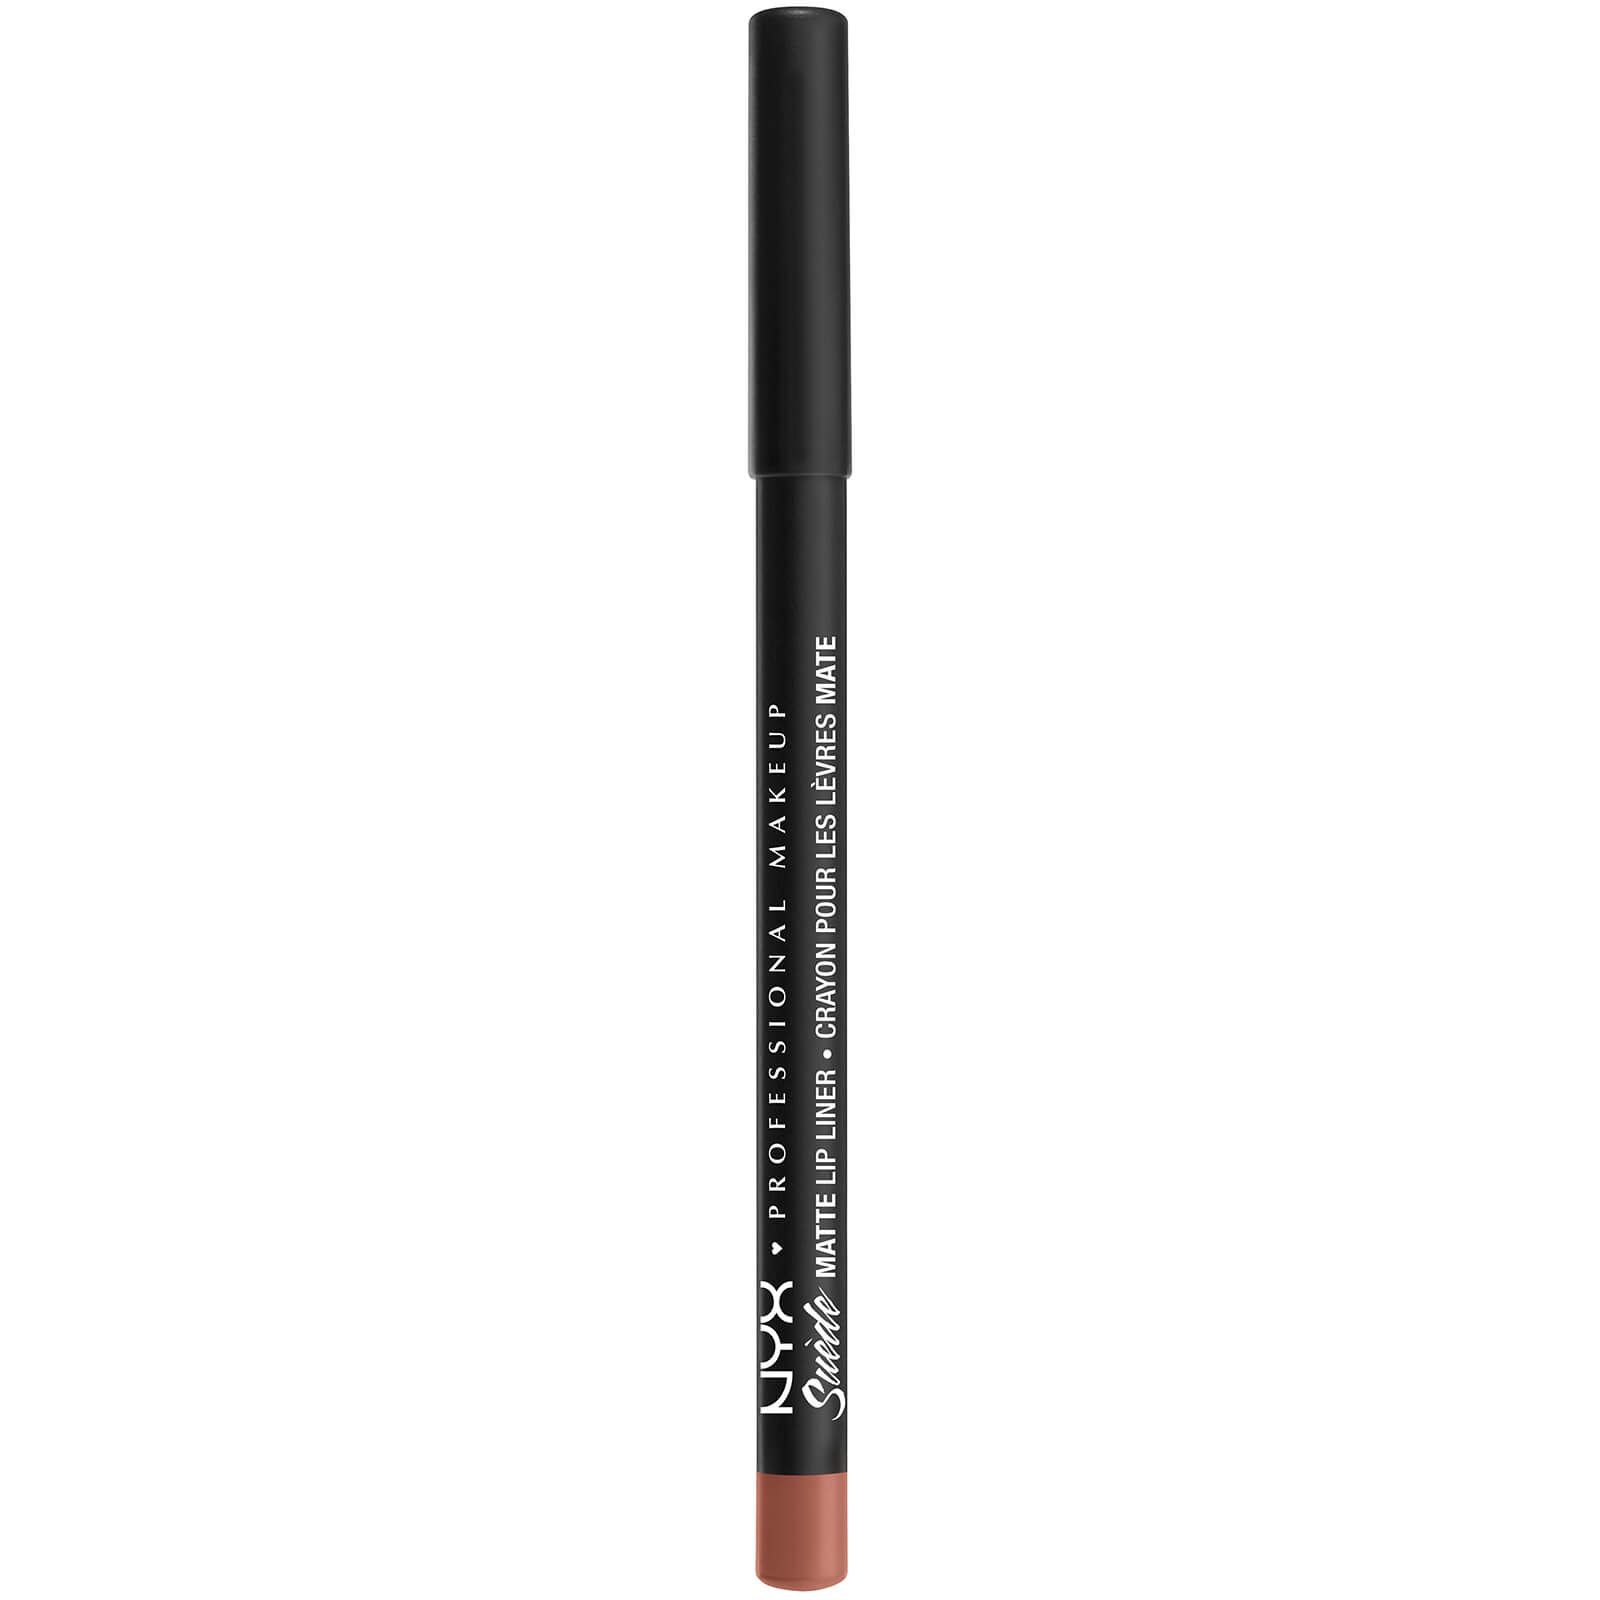 nyx professional makeup suede matte lip liner (various shades) - rose the day